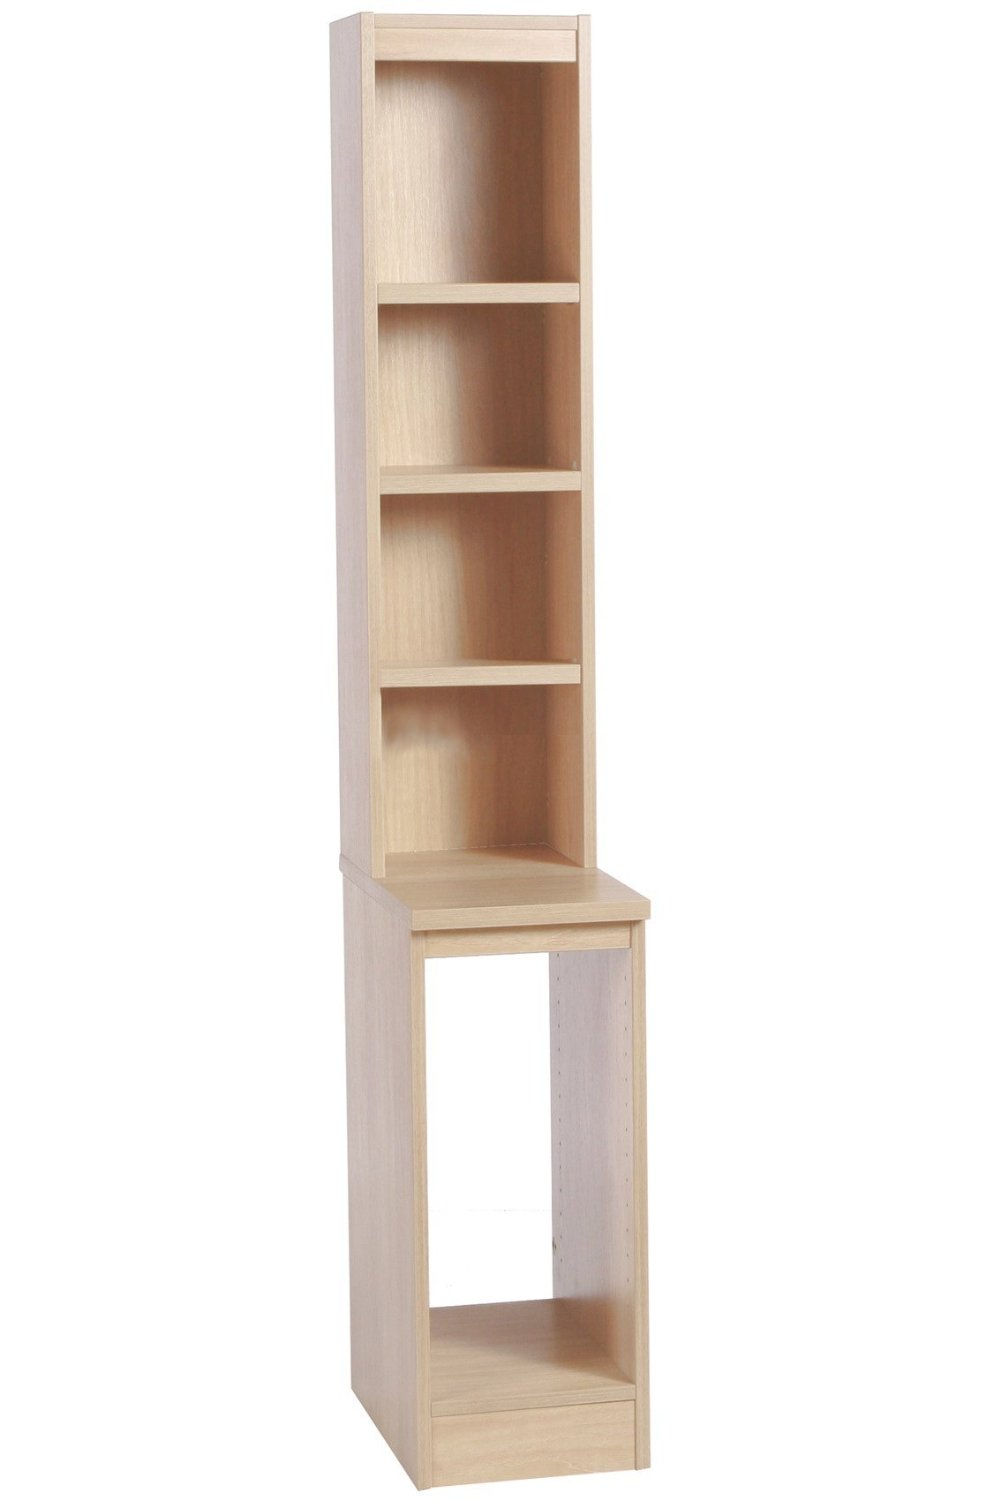 CPU COMPUTER TOWER STORAGE WITH HUTCH